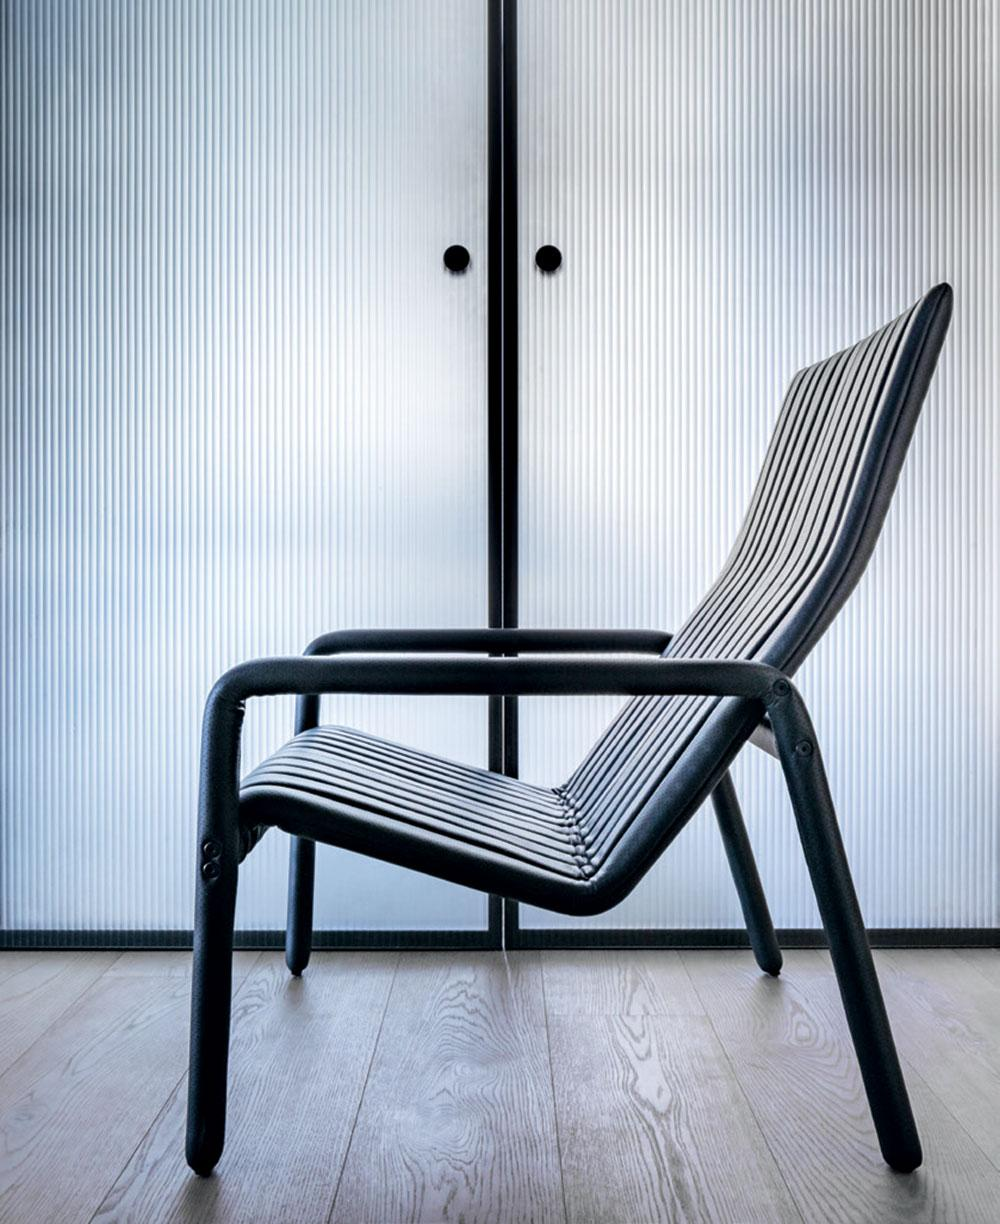 Philippe Malouin 'Alexander Street' side chair for Man of Parts